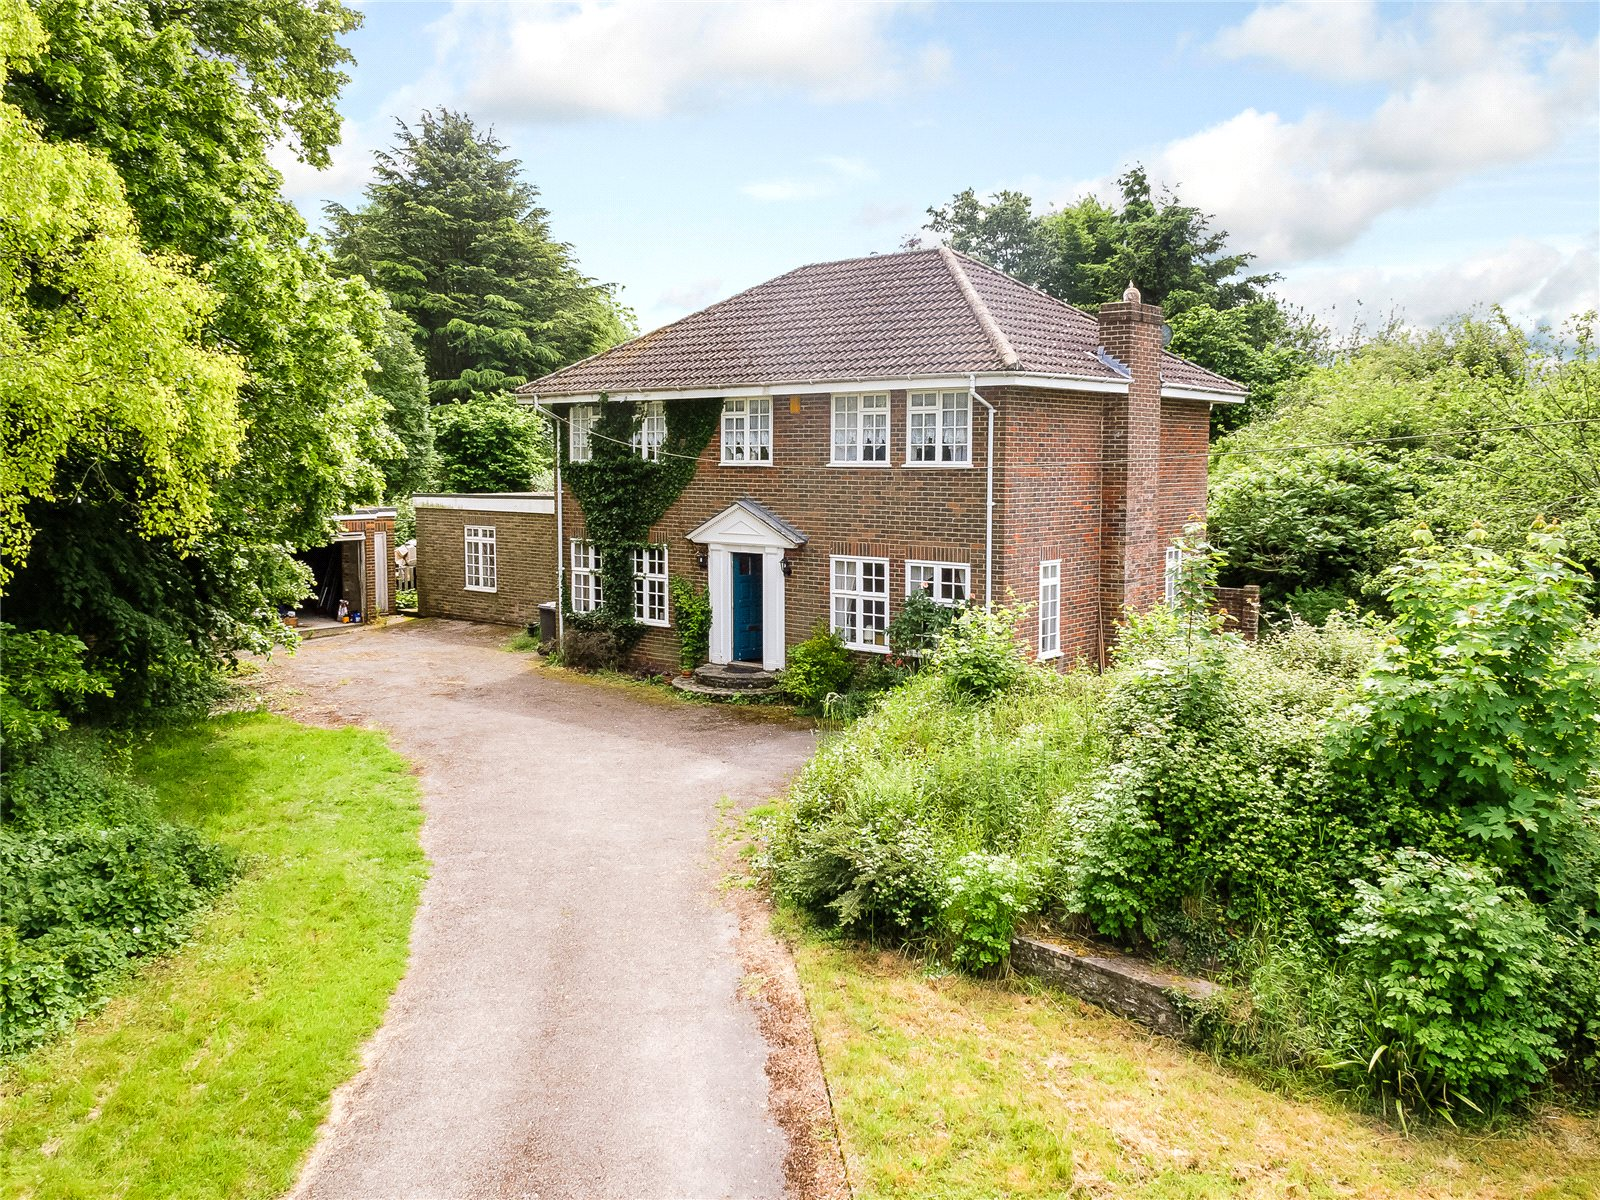 Maison unifamiliale pour l Vente à Wingate Lane, Long Sutton, Hook, Hampshire, RG29 Hook, Angleterre